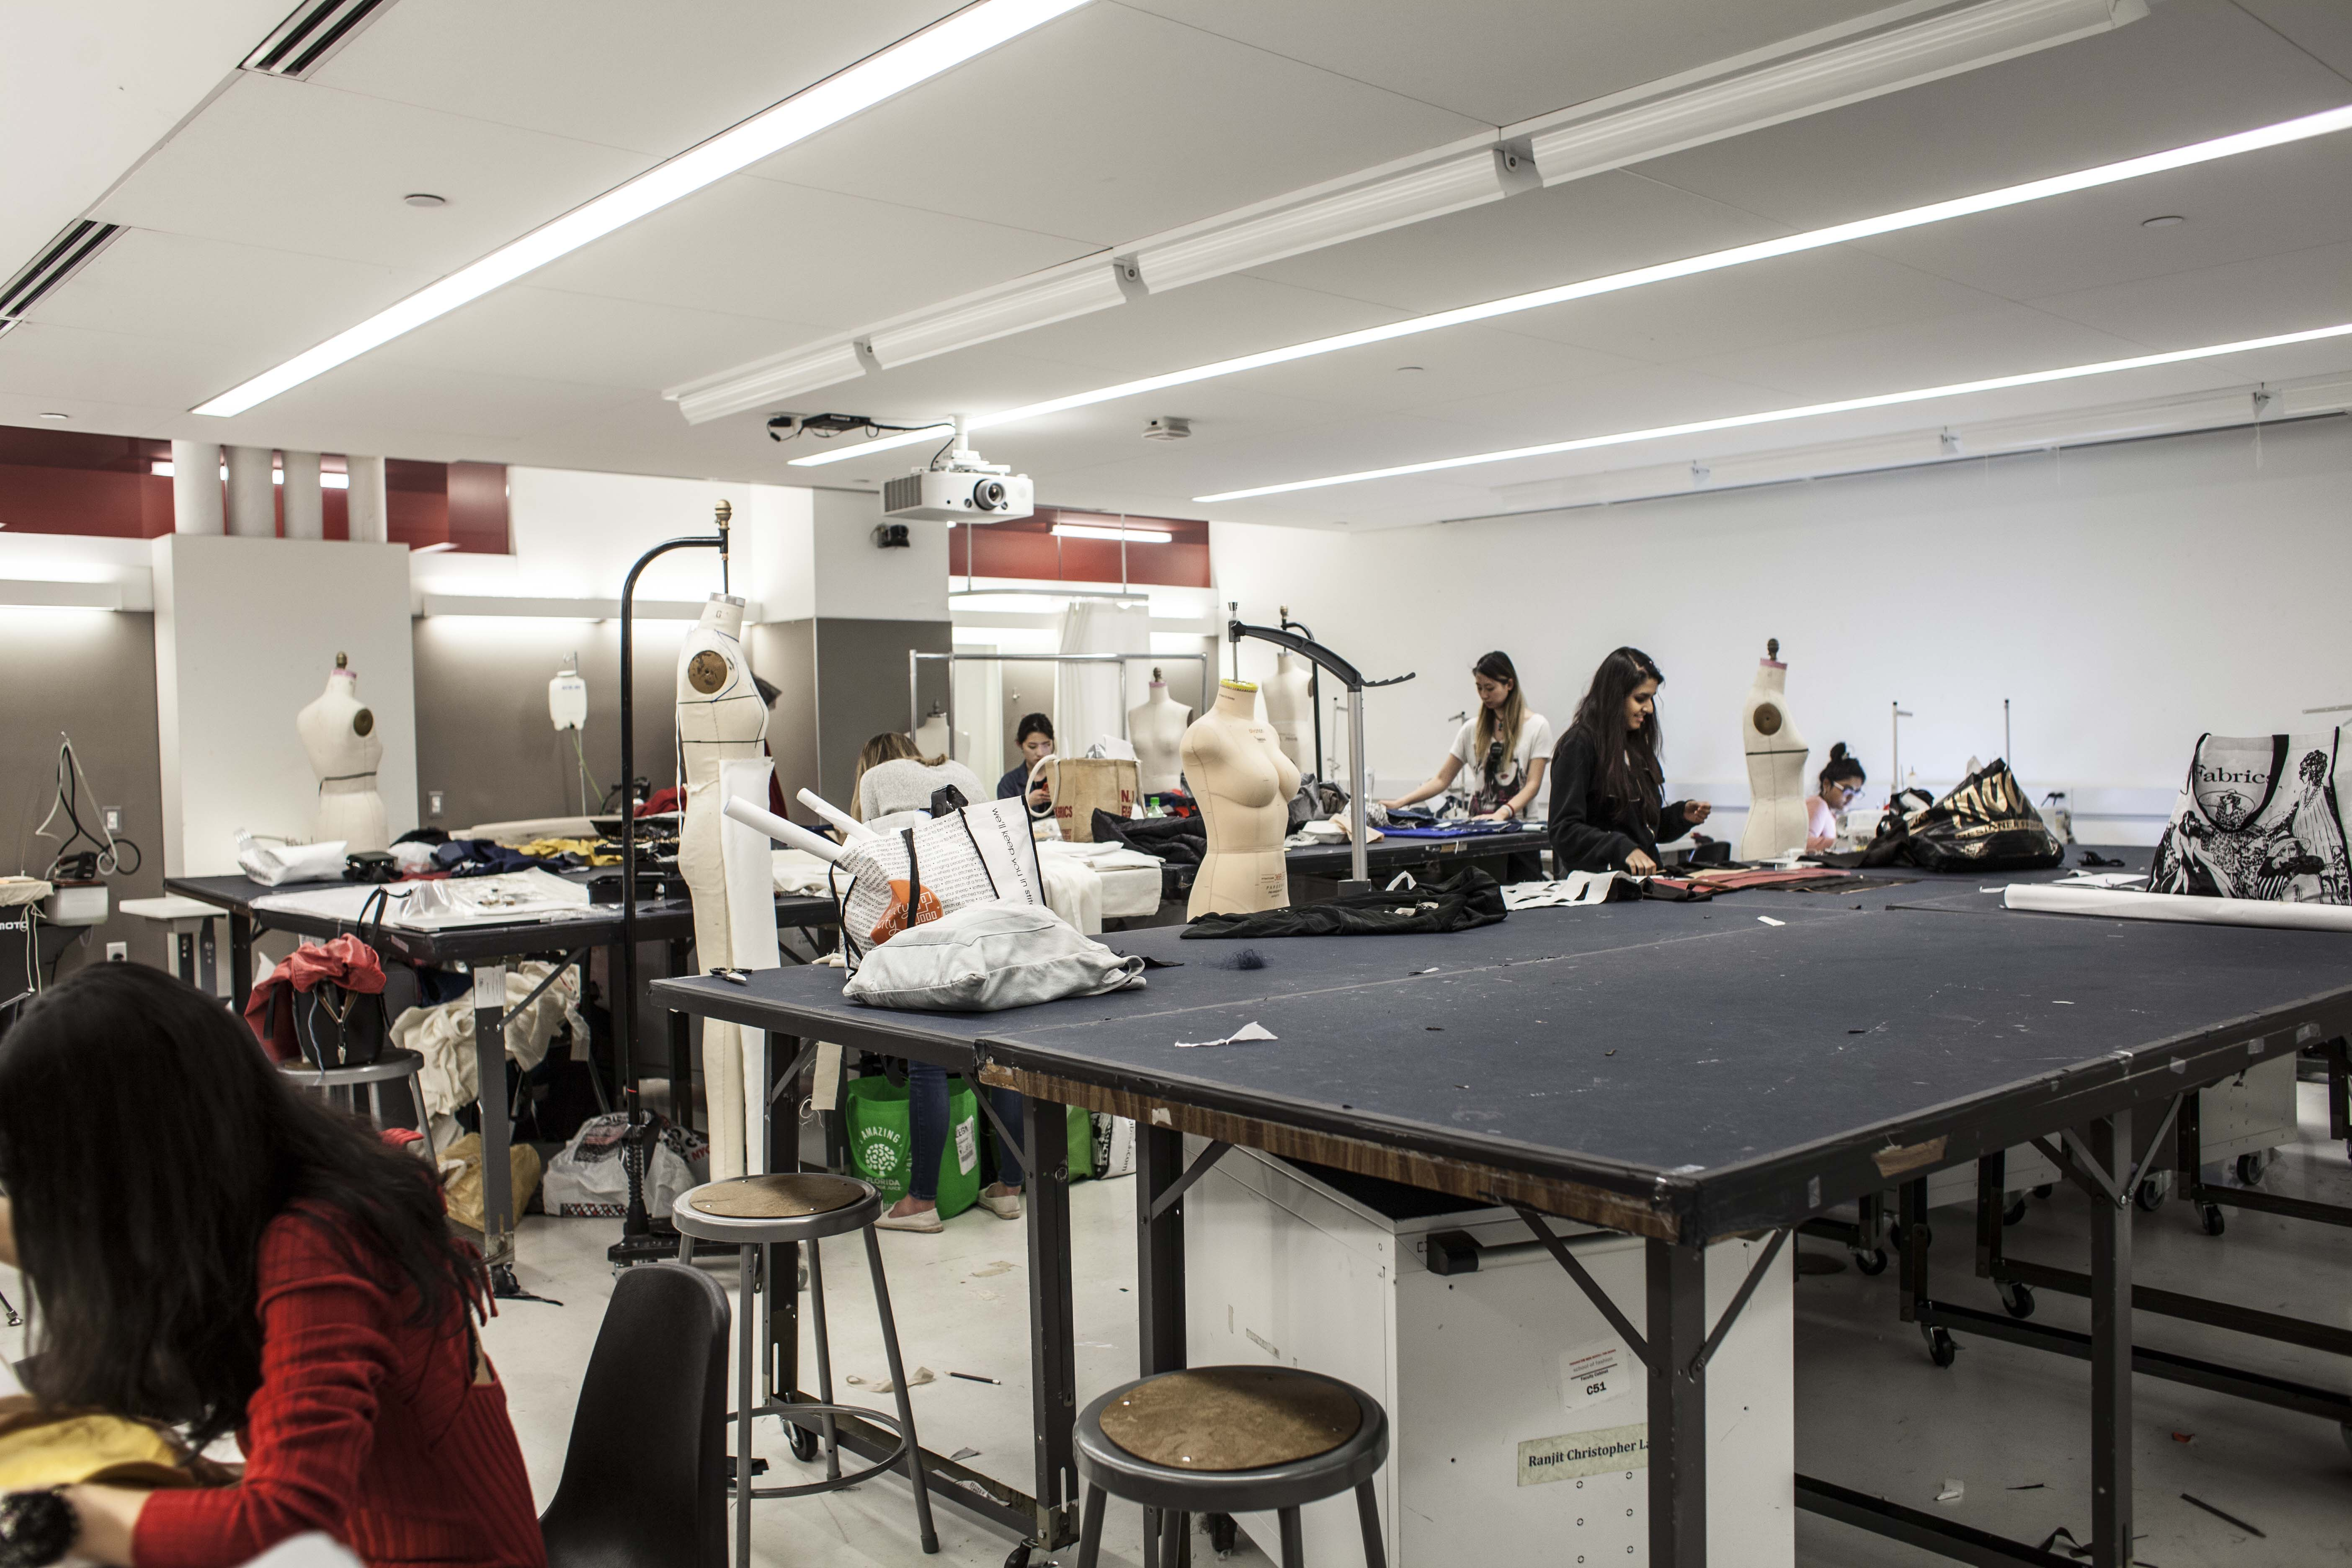 New Outsourcing Rules Spark Debate At Parsons Fashion The New School Free Press